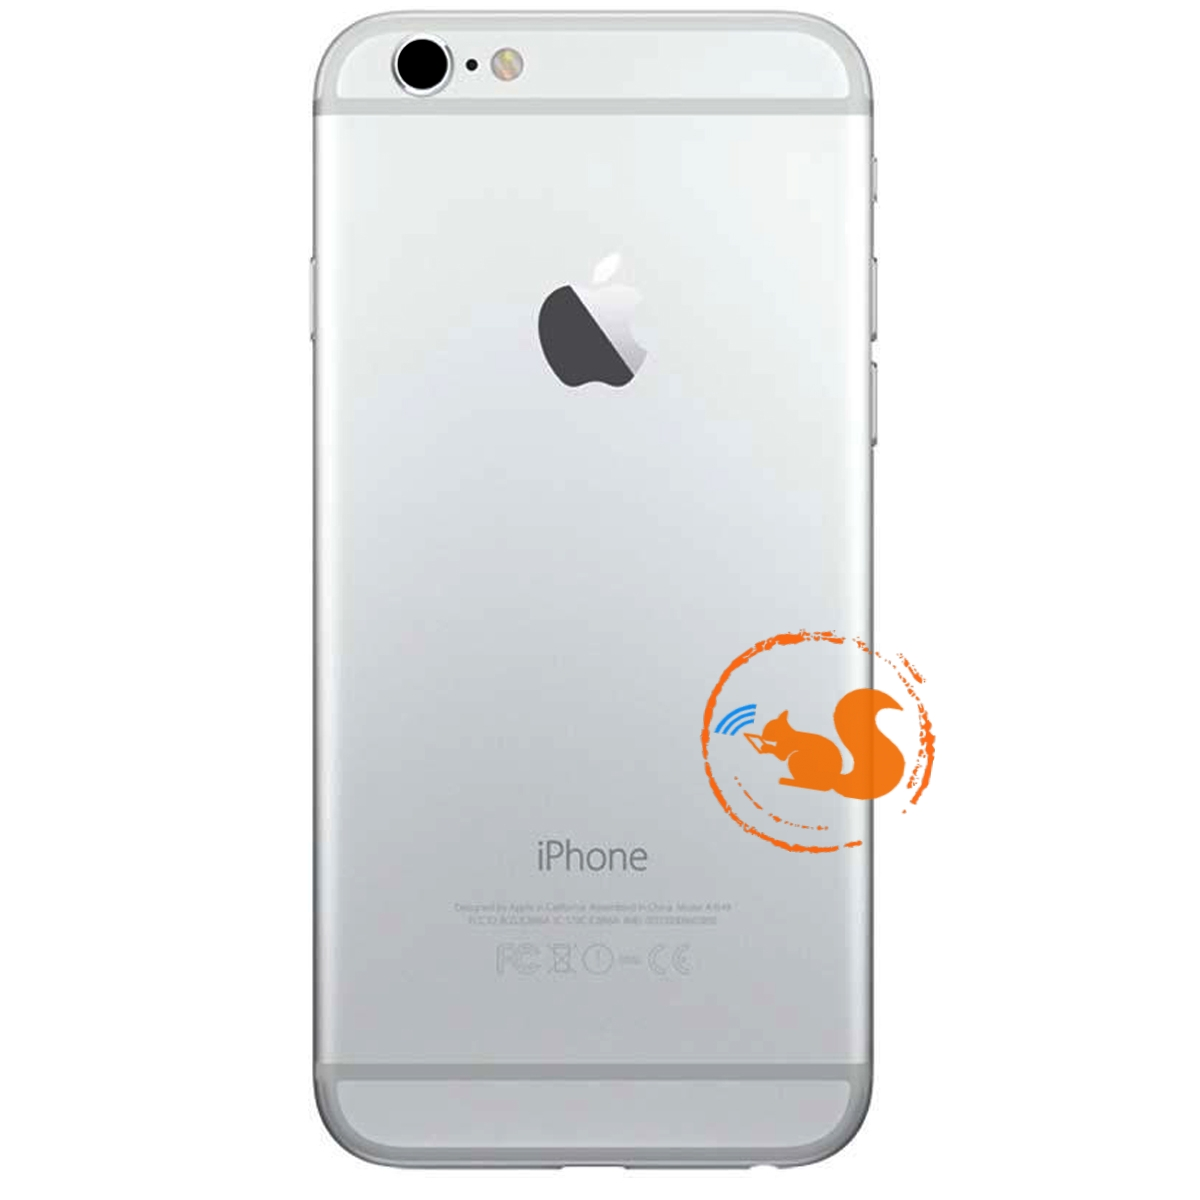 Xuong-vo-iPhone-6-G-Silver